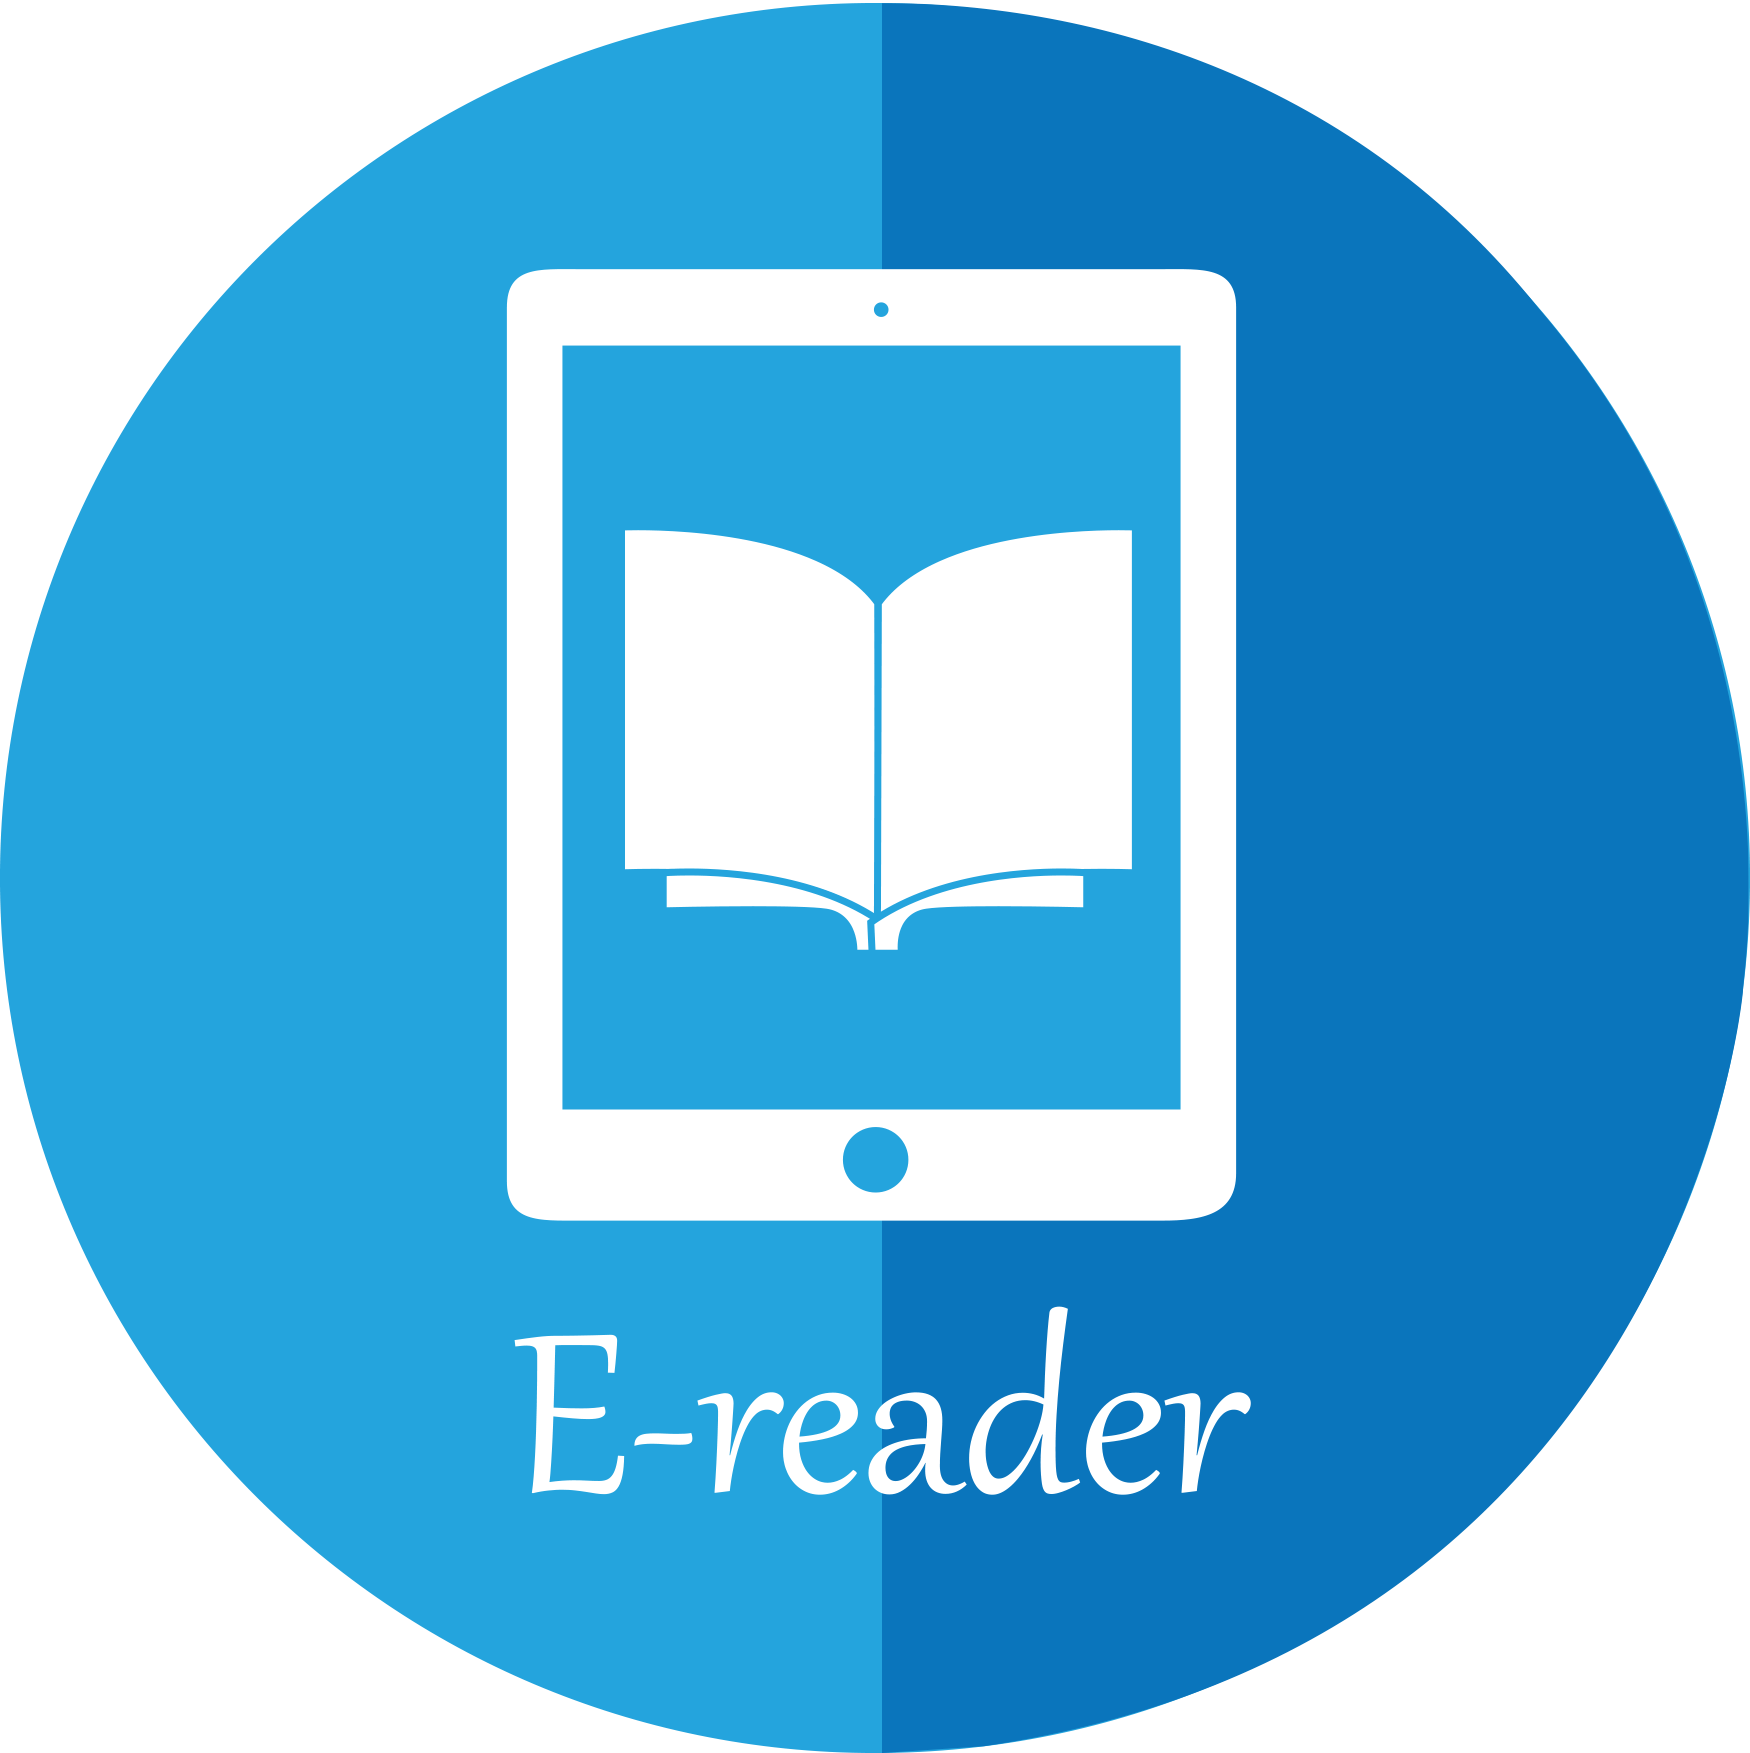 E-reader model vinden